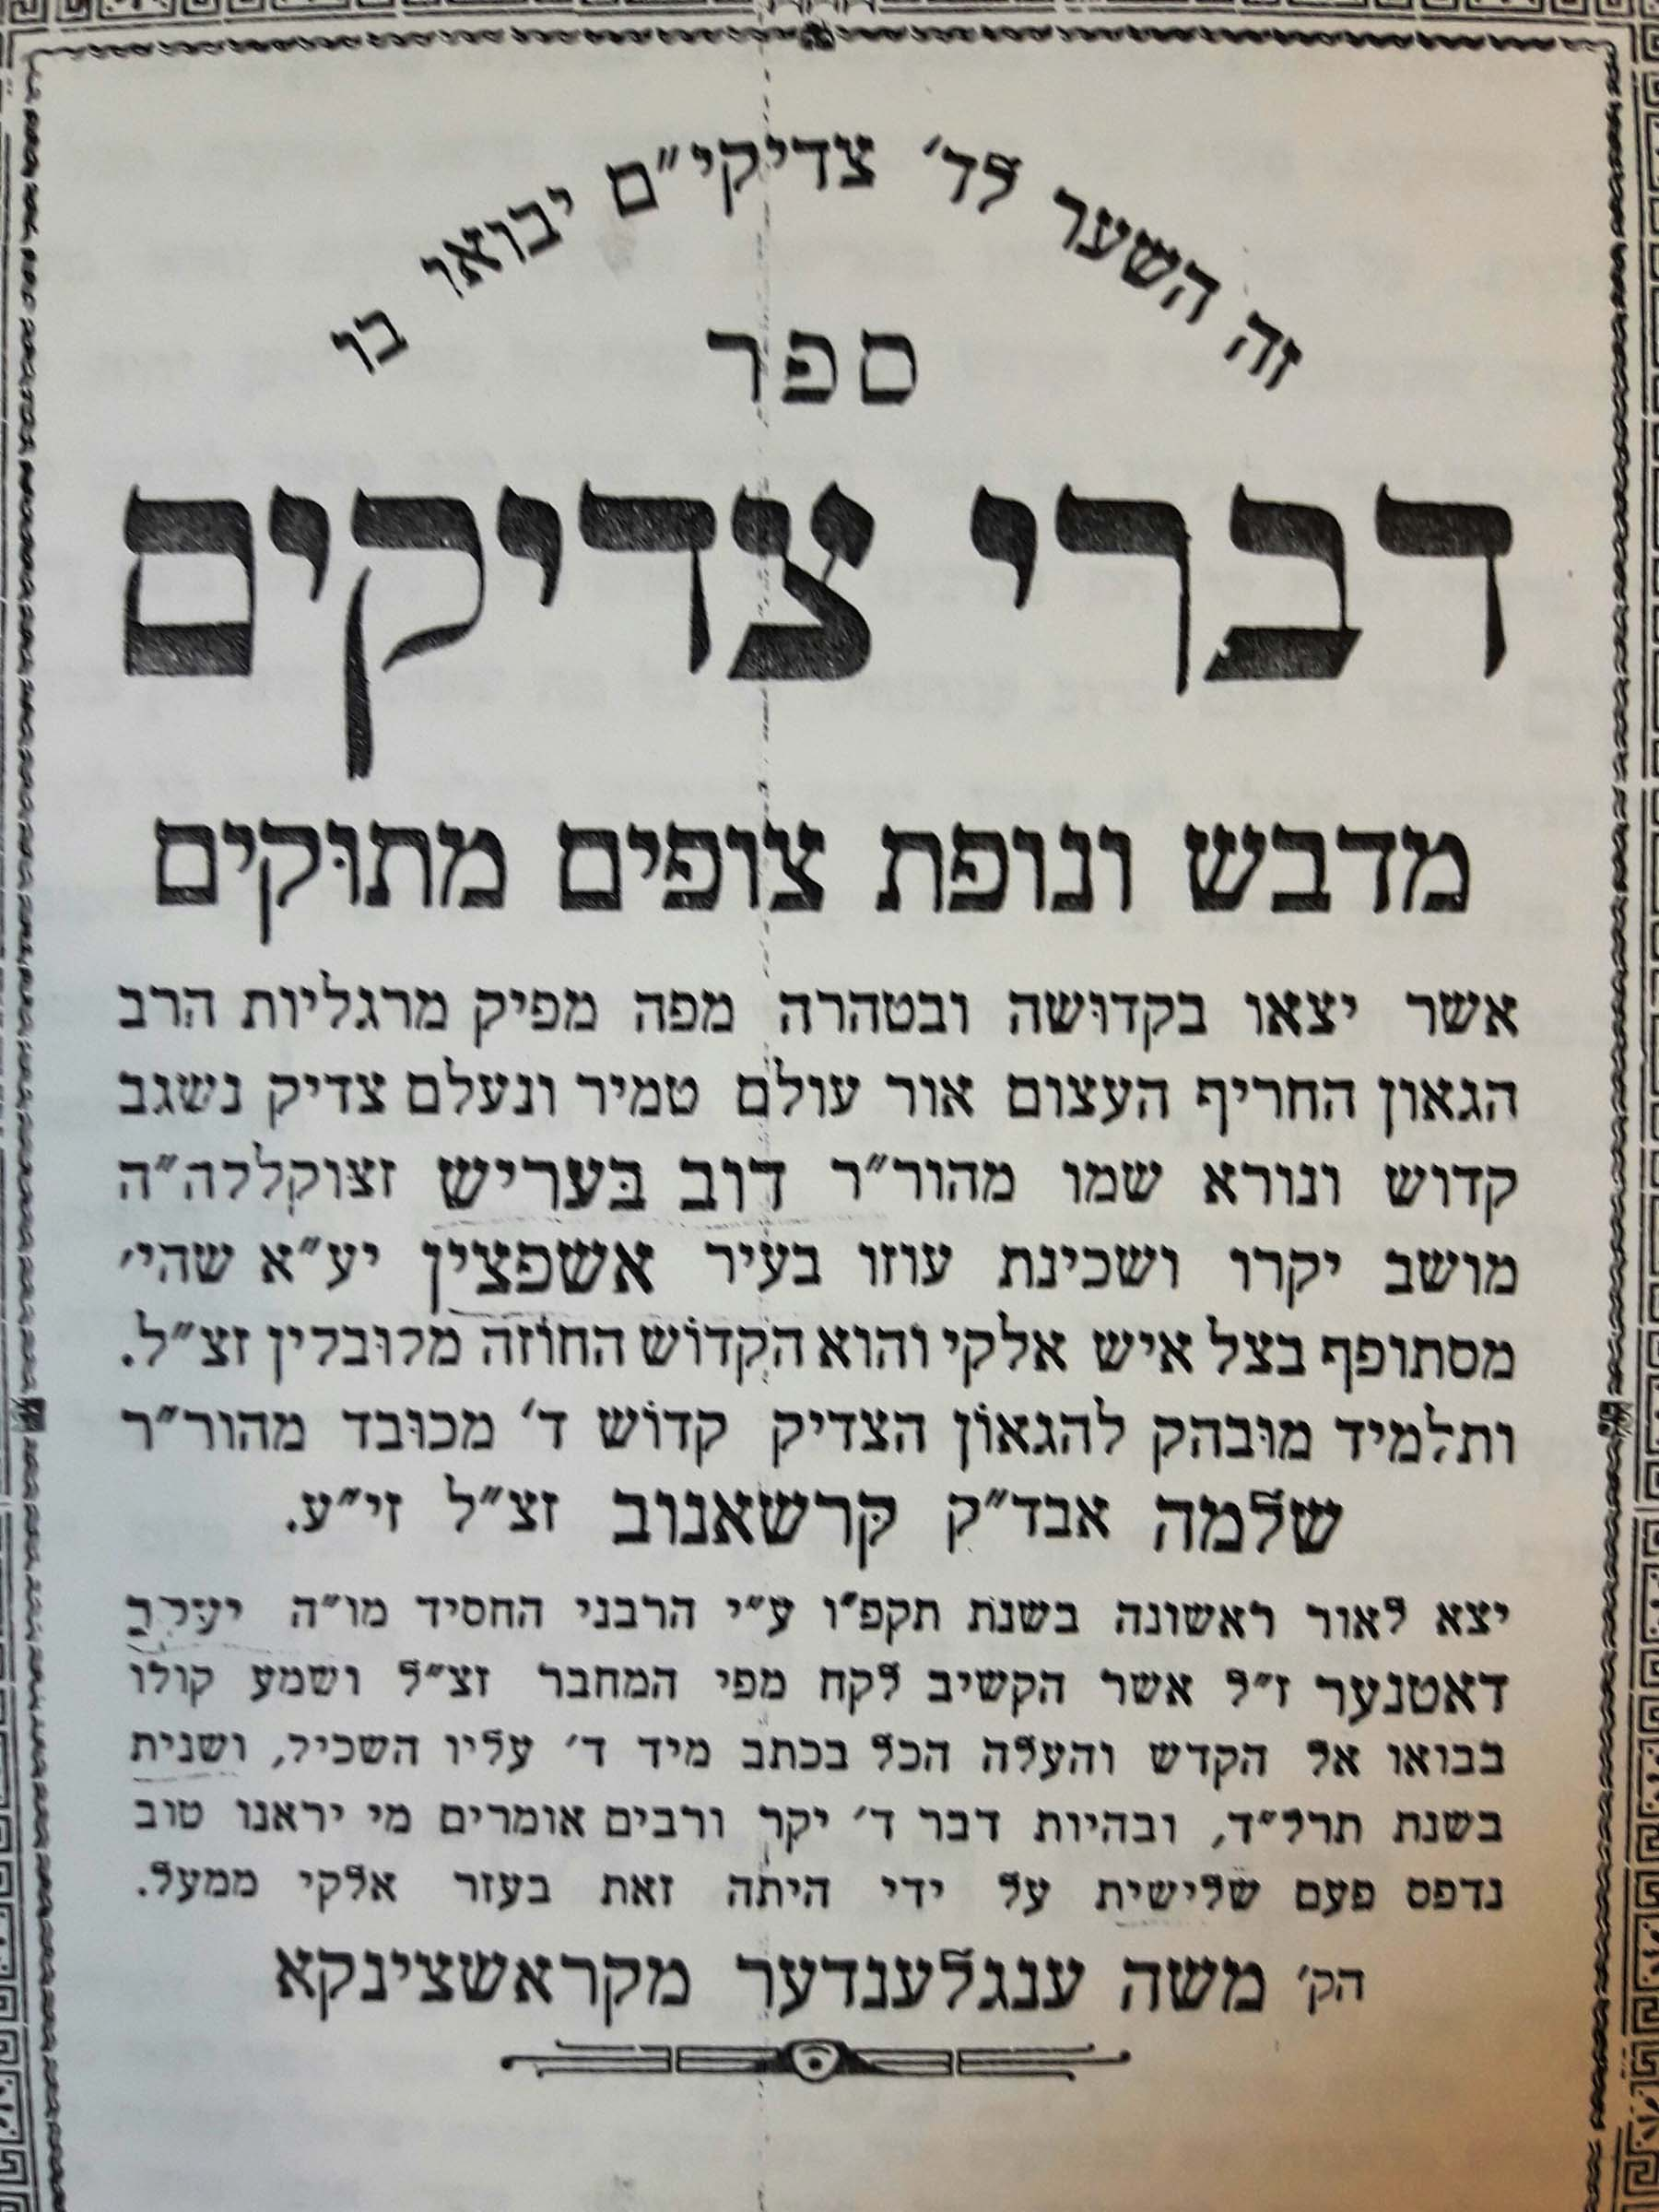 title page of Divrei Tzadikim by Rabbi Dov Berish of Oswiecim (Auschwitz), 1929